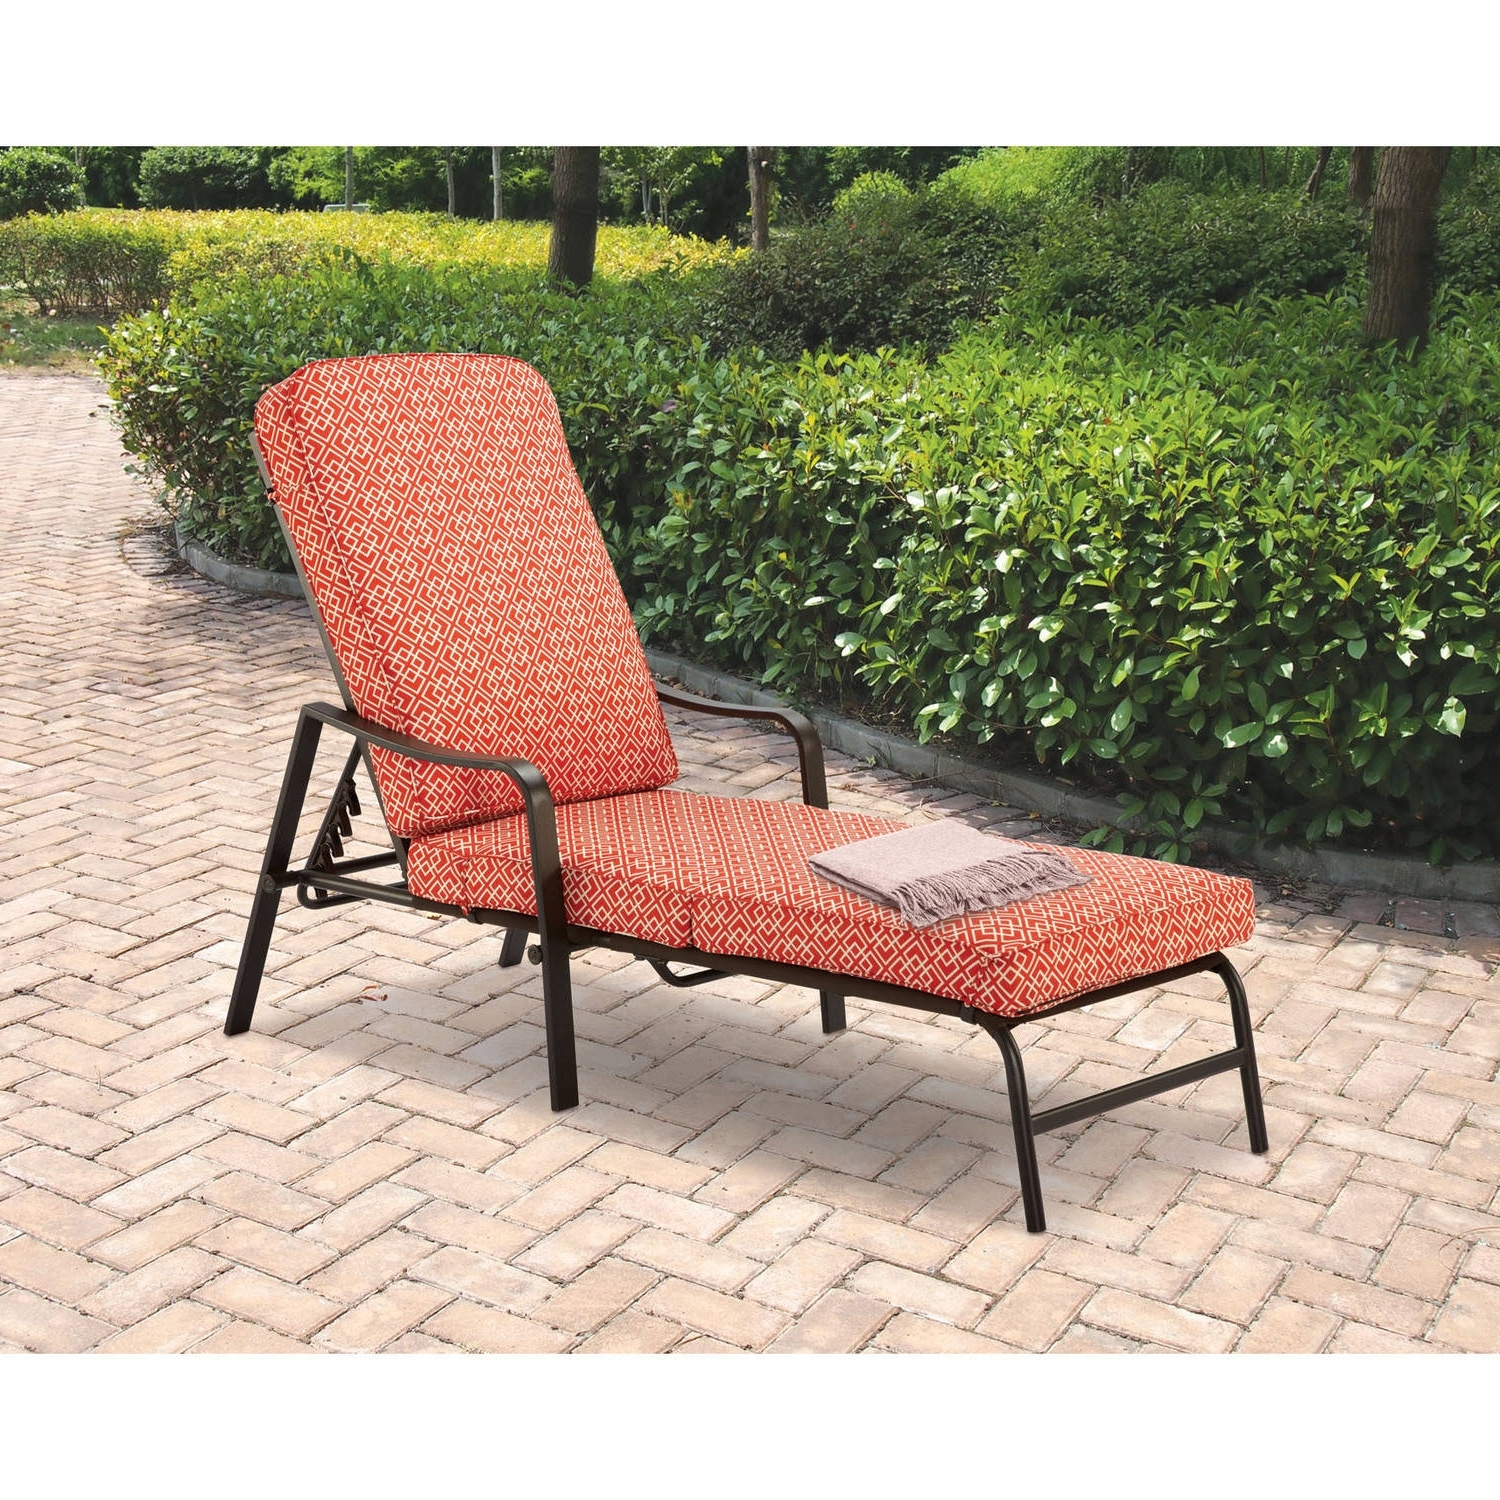 com ldf audubon sale lounge long gateway w cushions sunbrella lakeview on patio chaise piping mist cushion ultimate ultimatepatio by designs replacement outdoor extra set